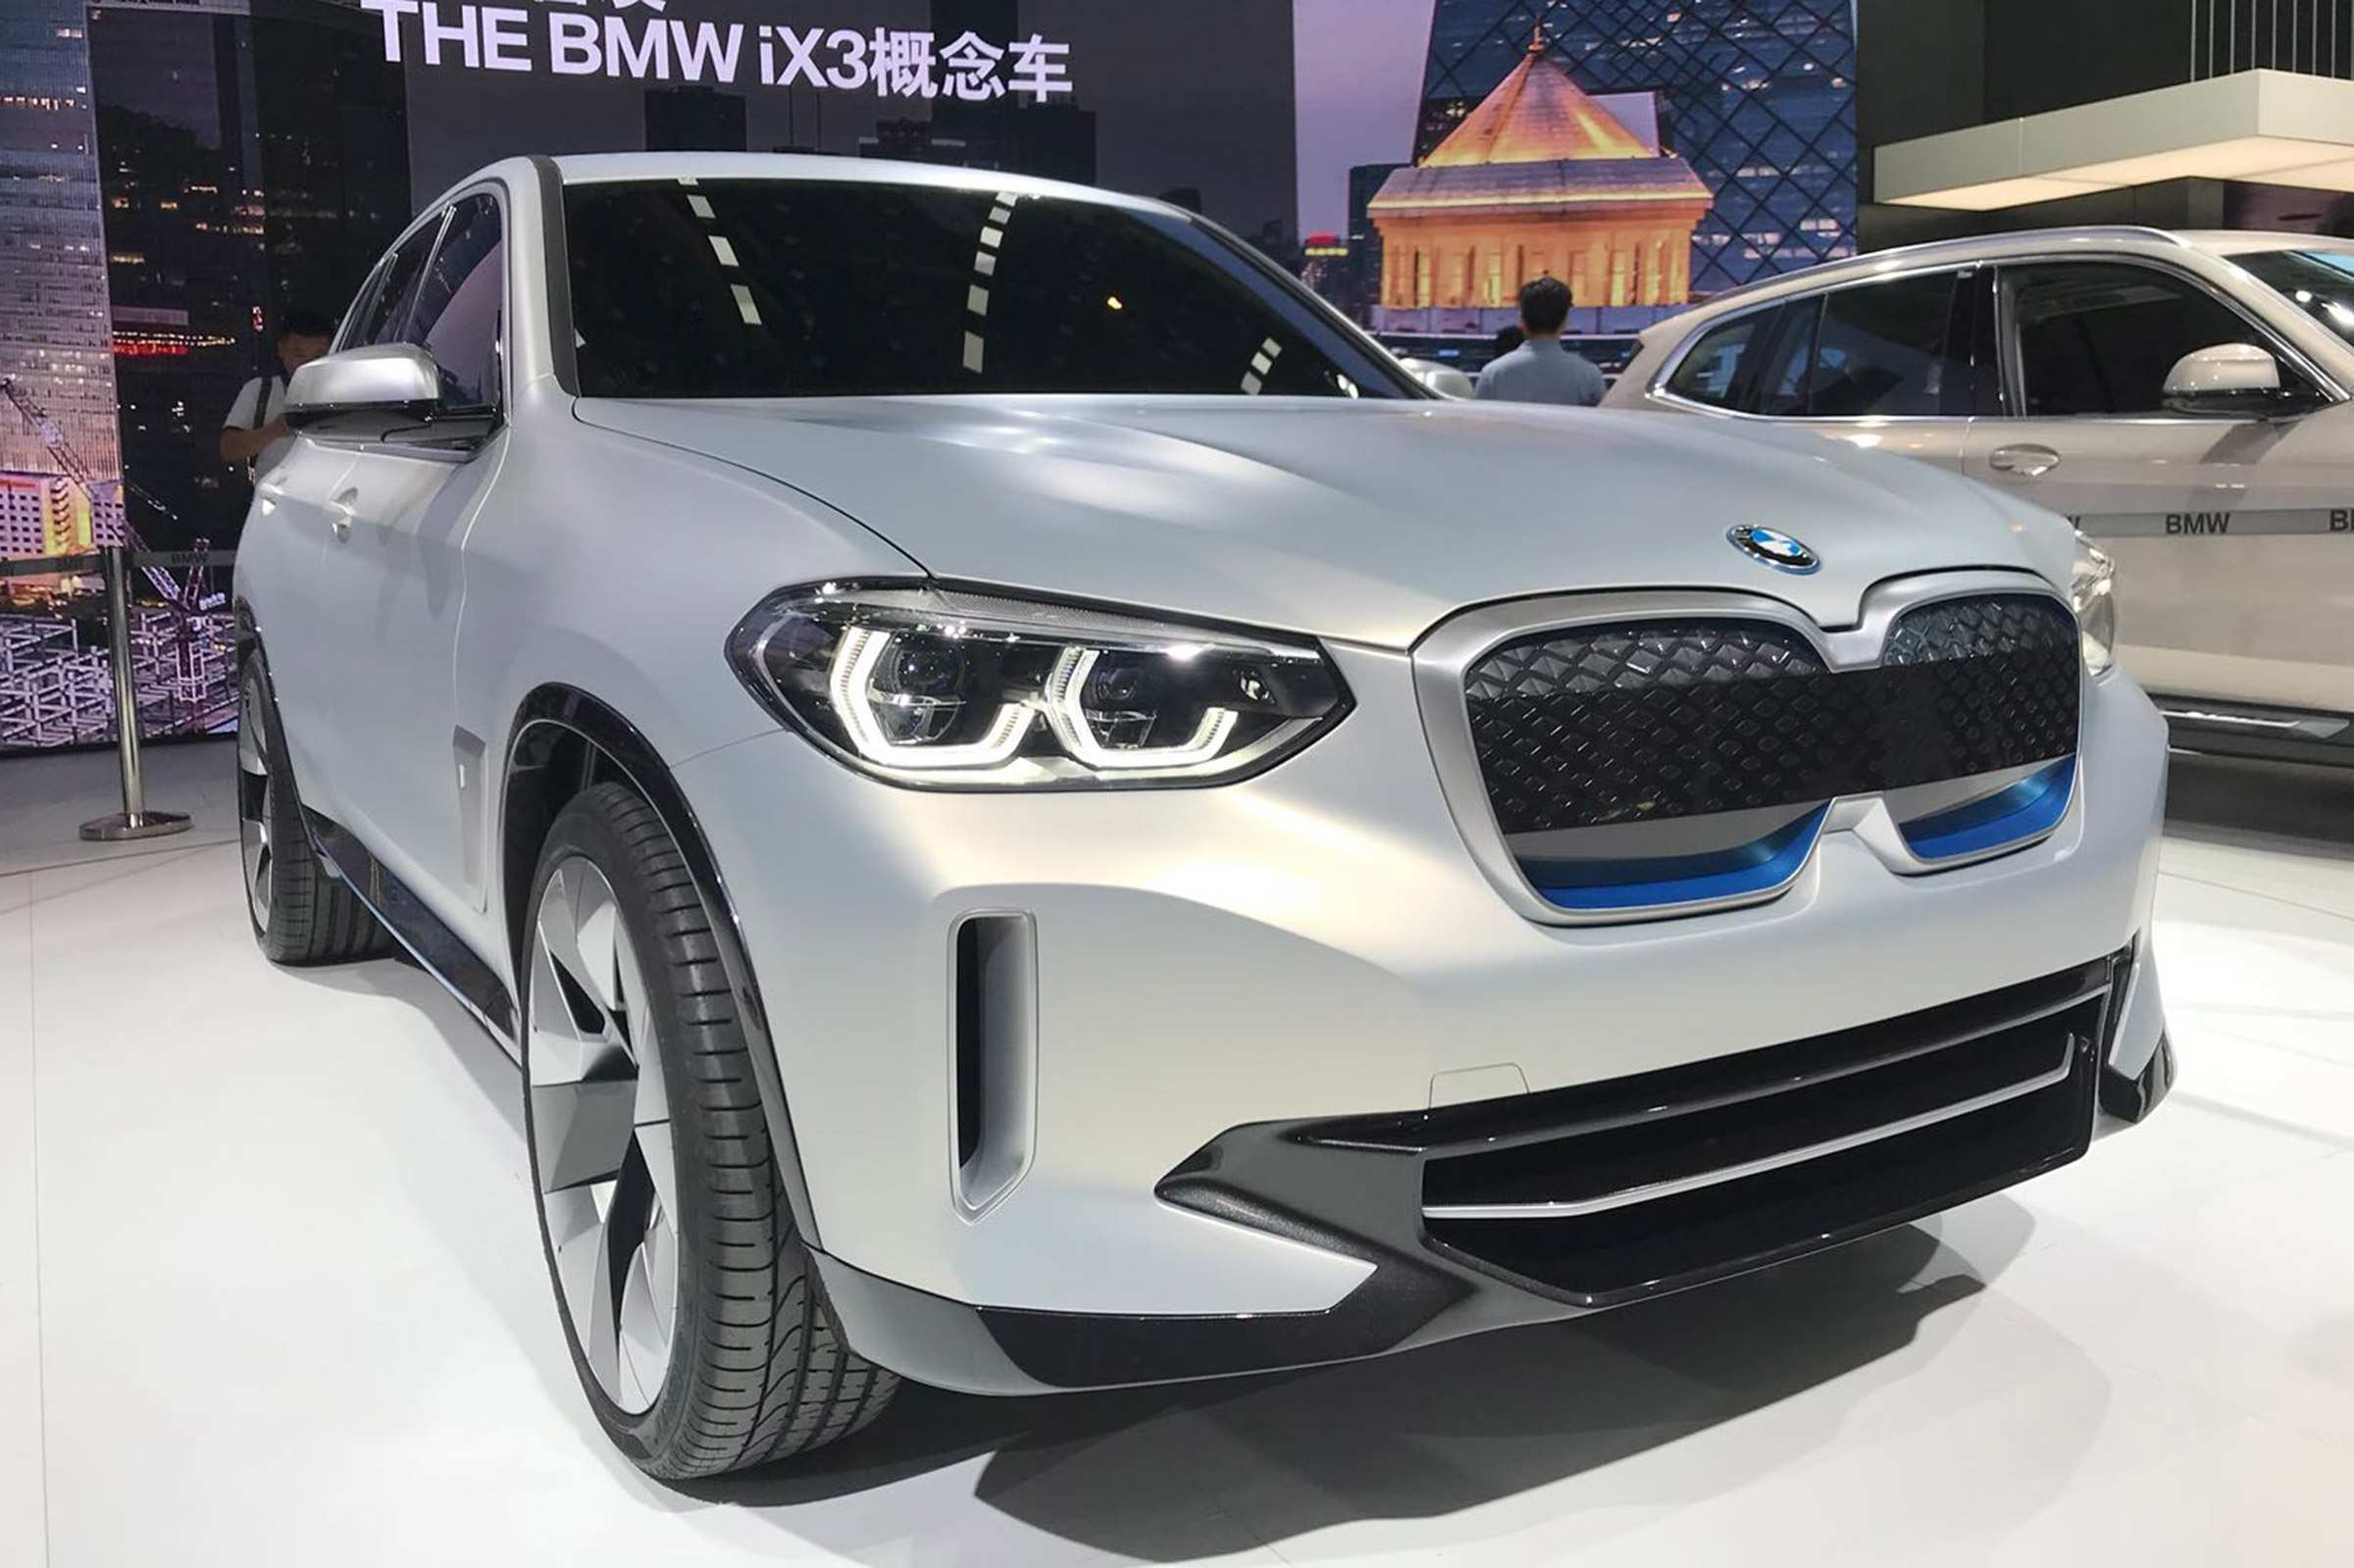 88 Gallery of 2020 Bmw X3 Electric Spy Shoot by 2020 Bmw X3 Electric